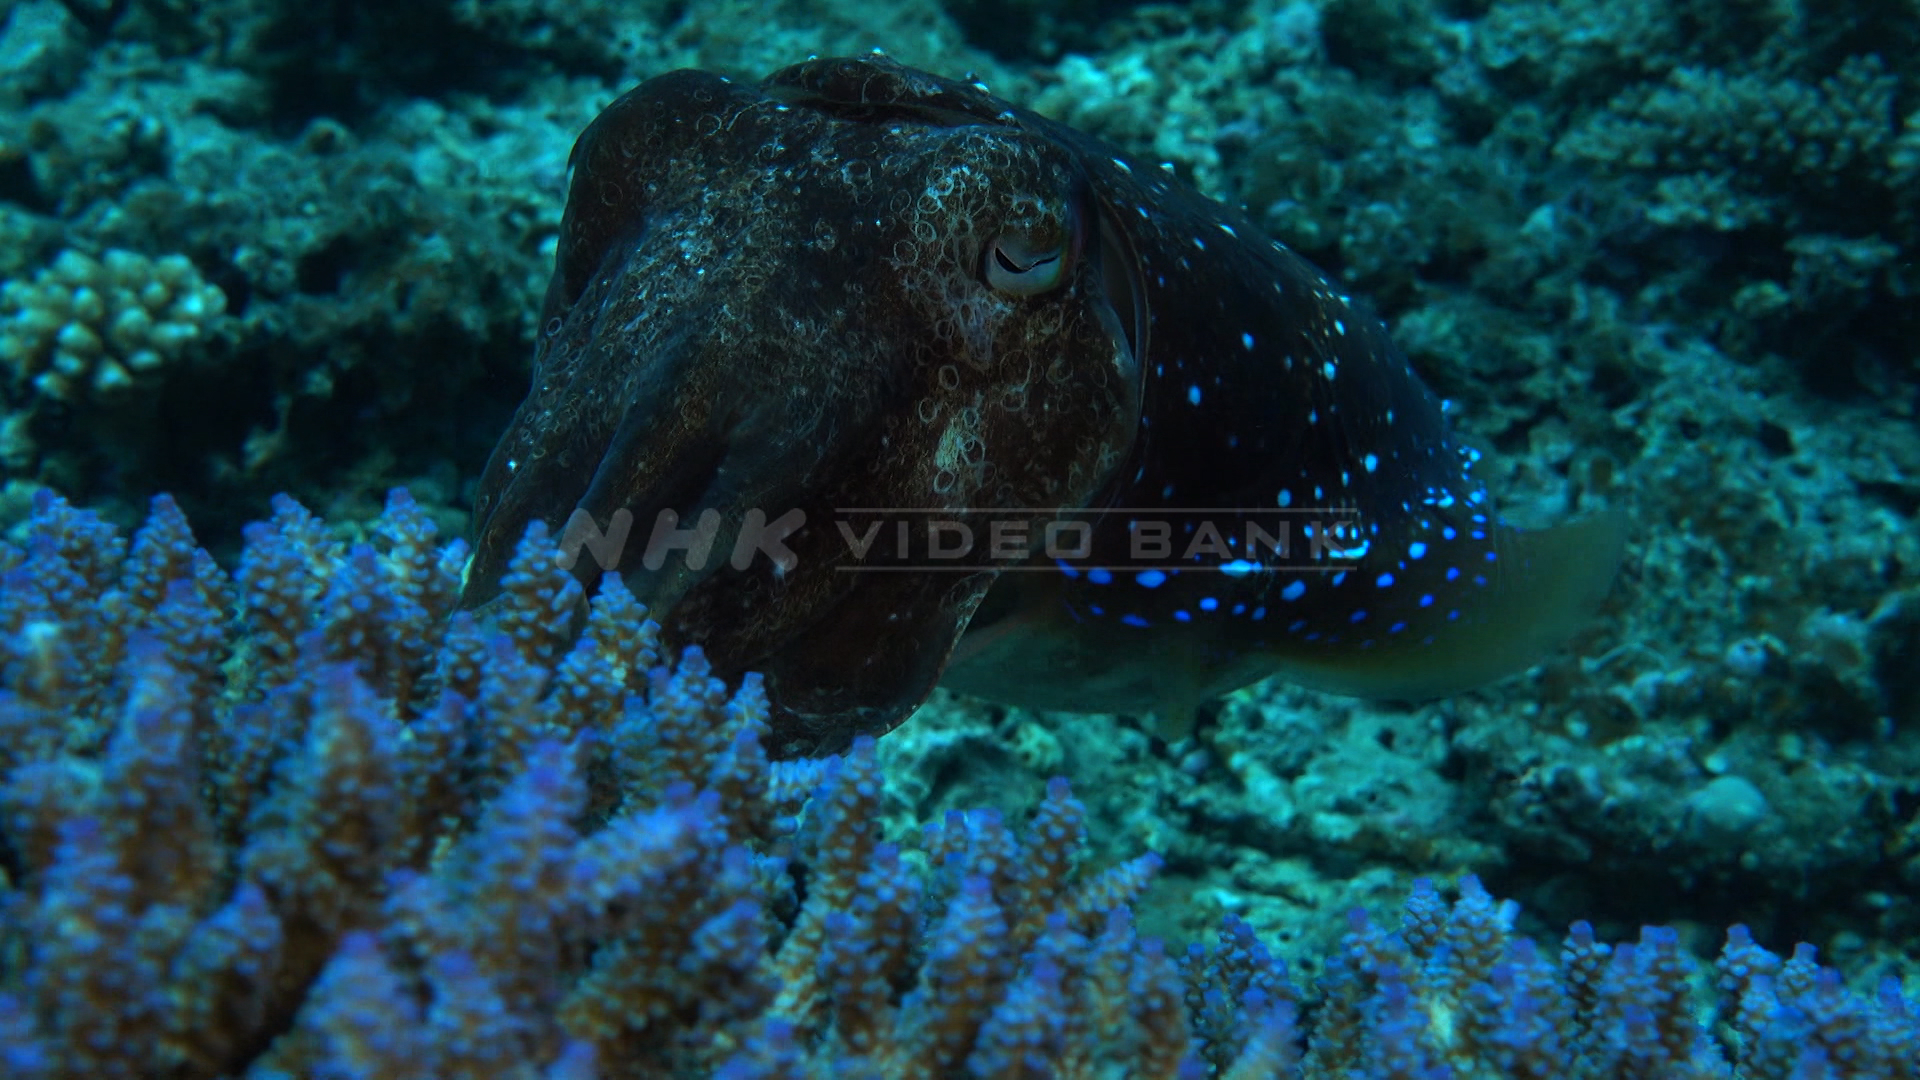 Underwater: broadclub cuttlefish spawning  in the sea off Kerama Islands, Okinawa